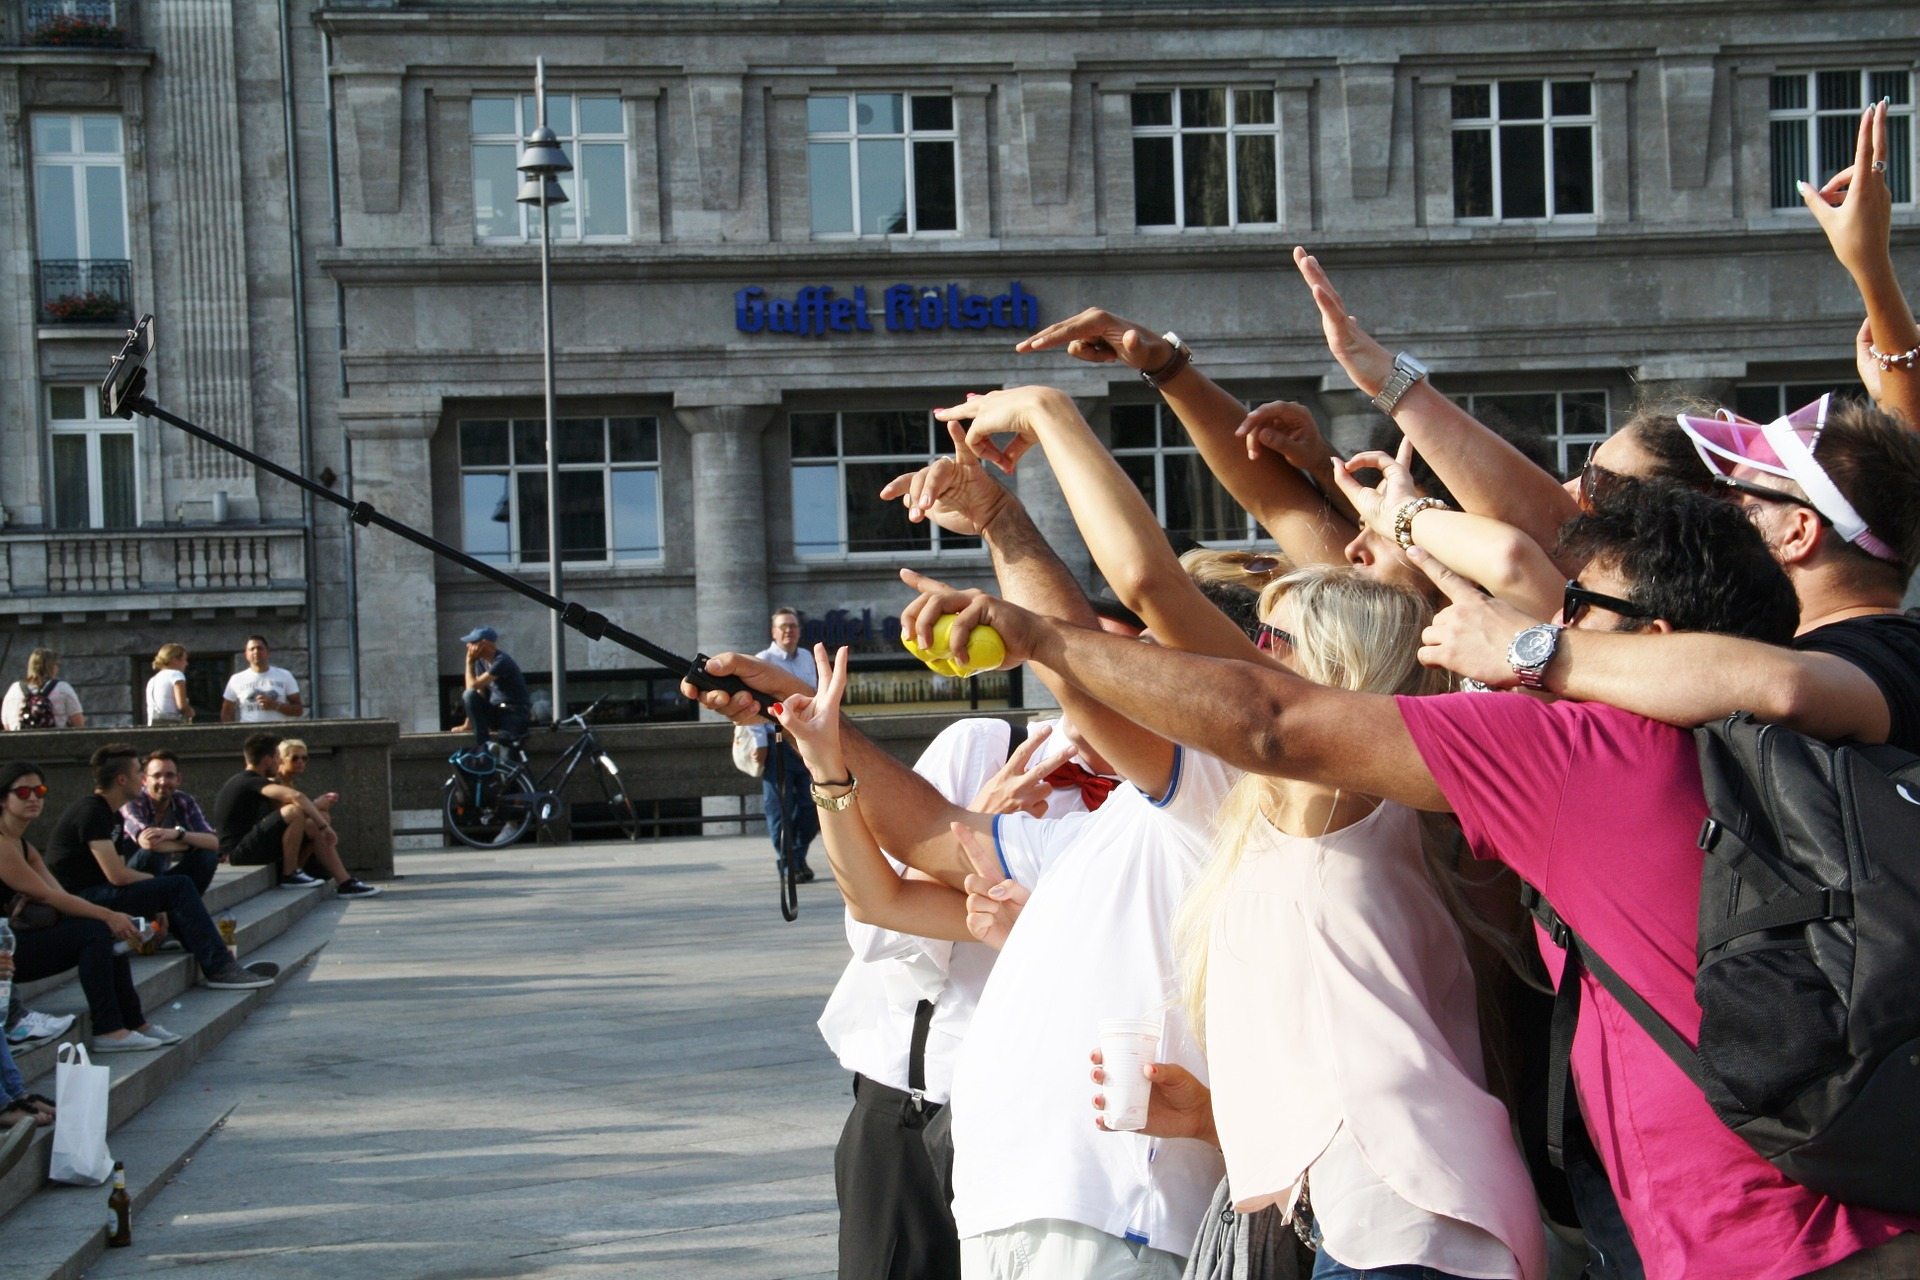 Group of people taking photo using a selfie stick